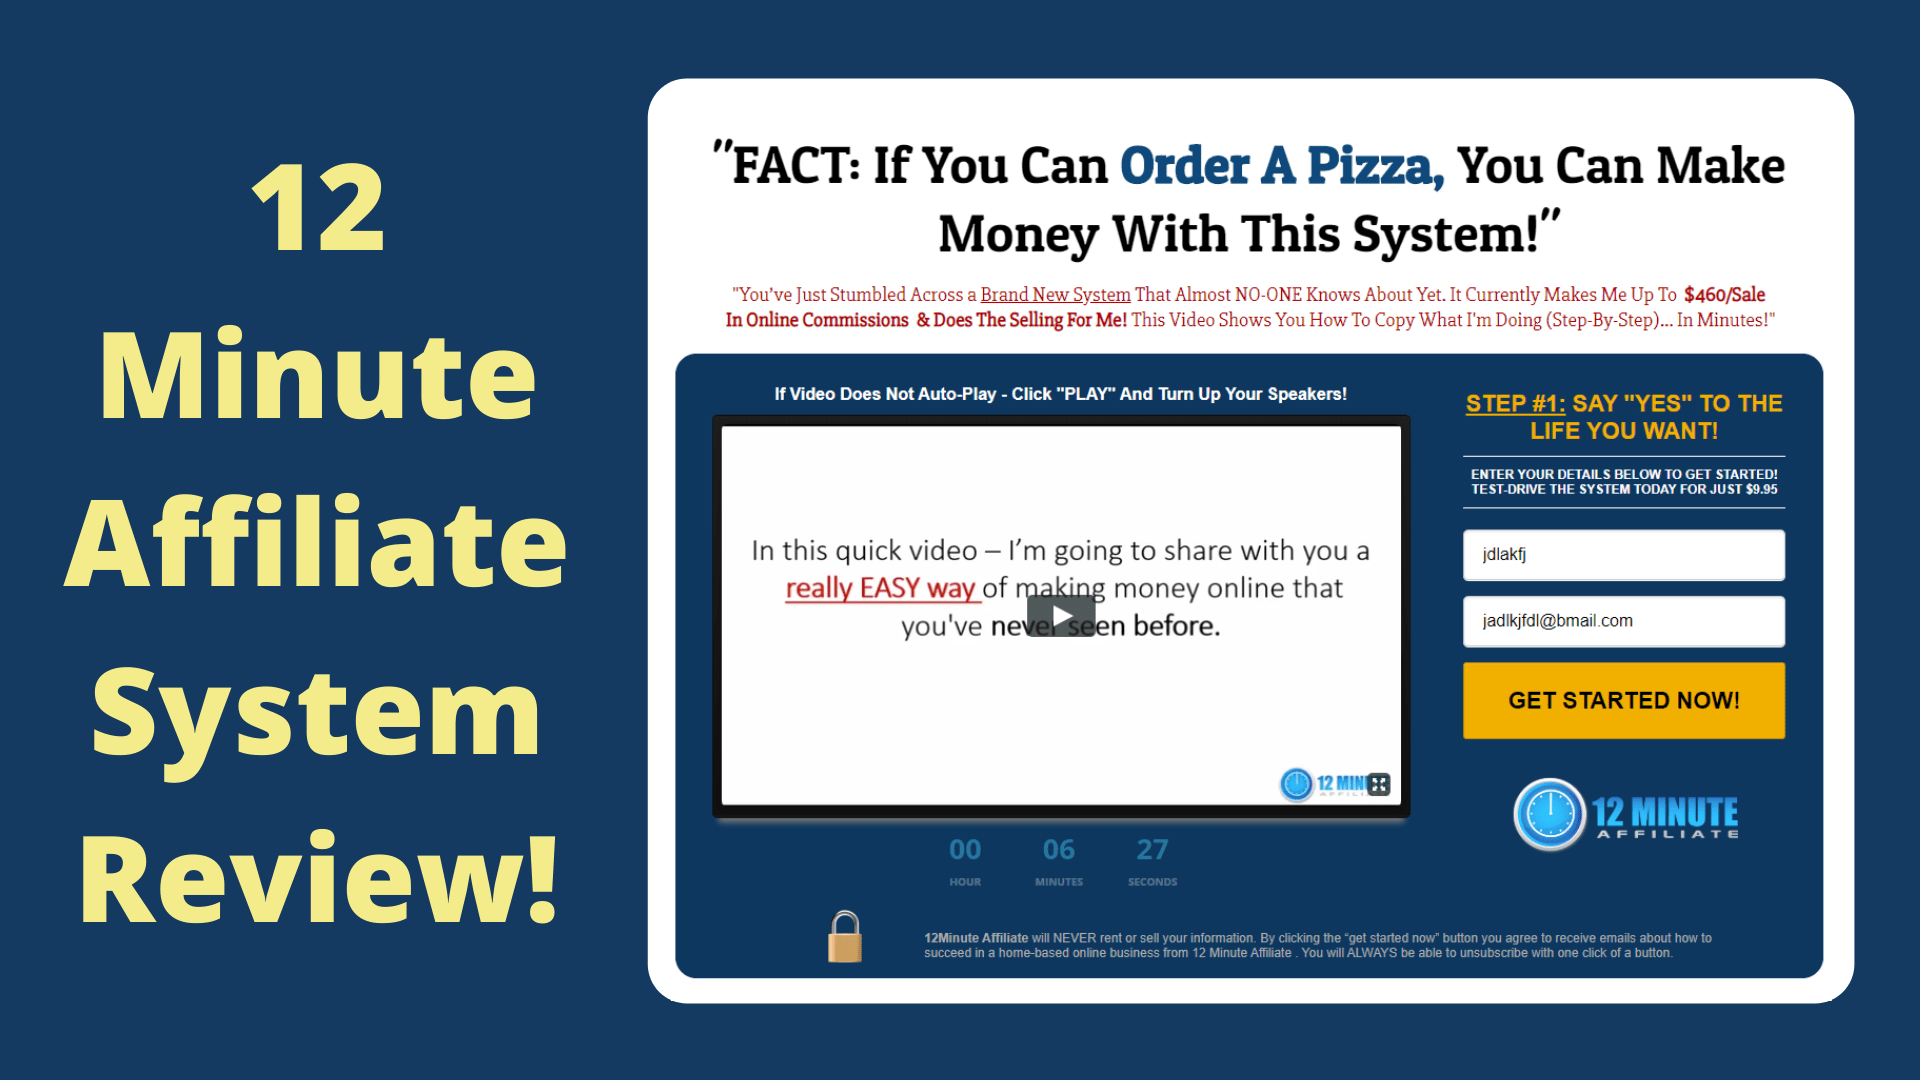 12 Minute Affiliate System Review: This Is What I Got!